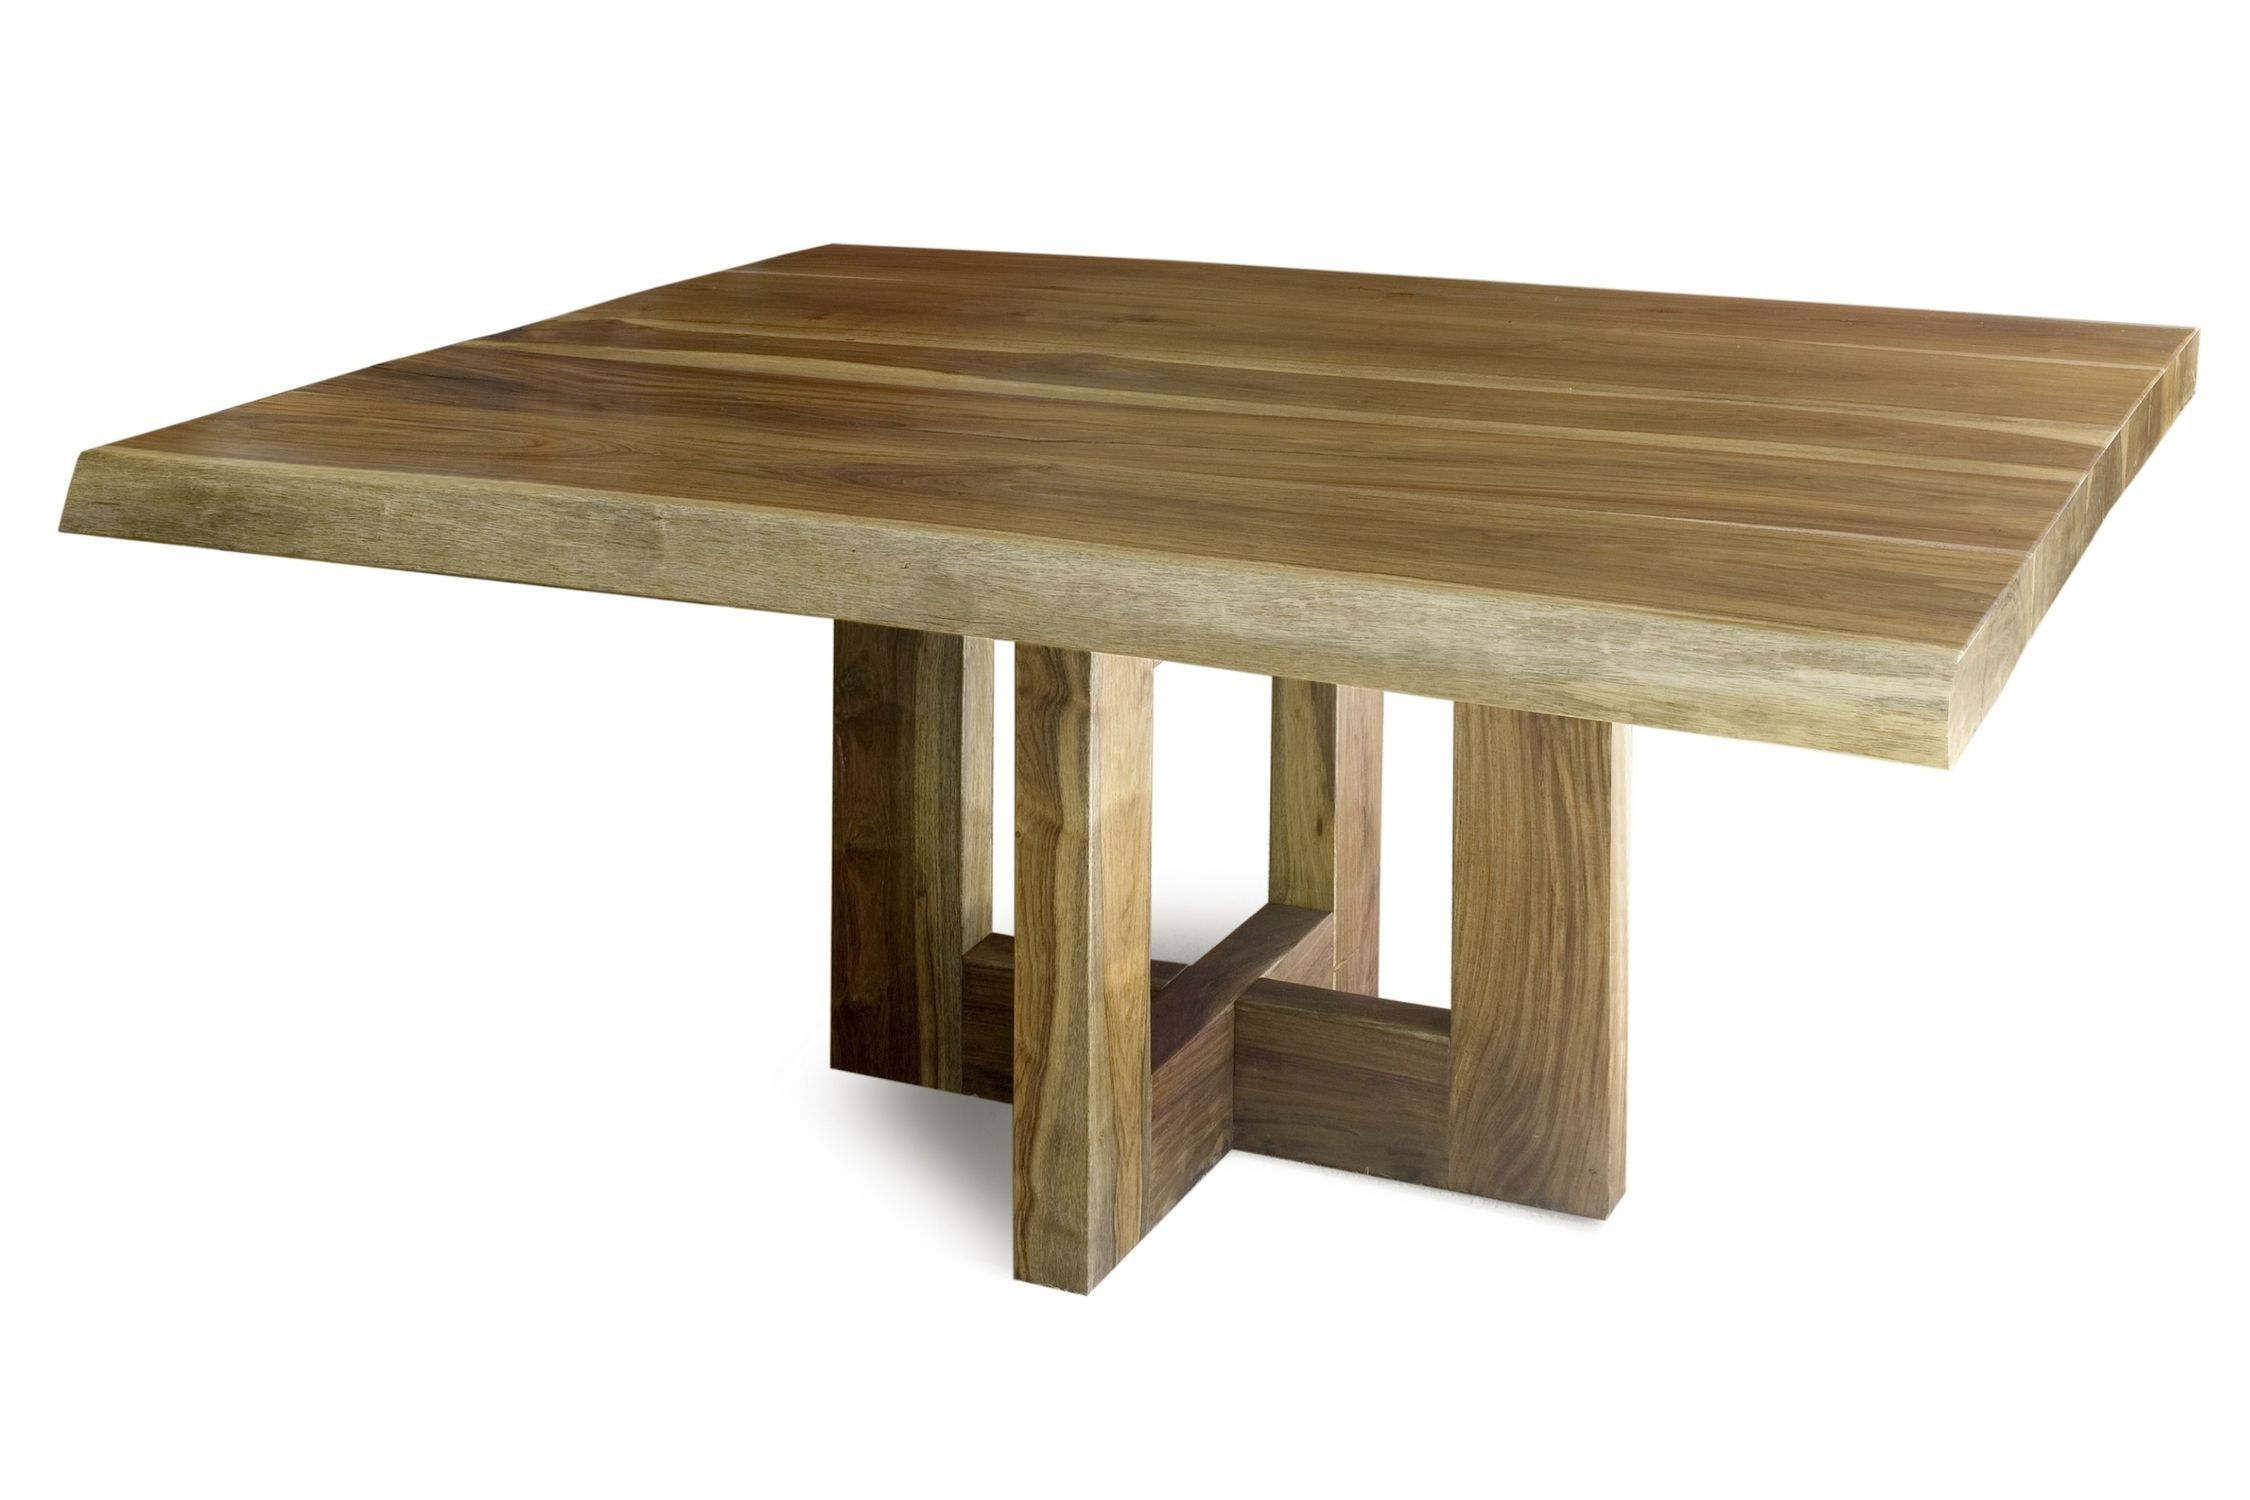 Contemporary rectangle unfinished reclaimed wood table for for Table design ideas